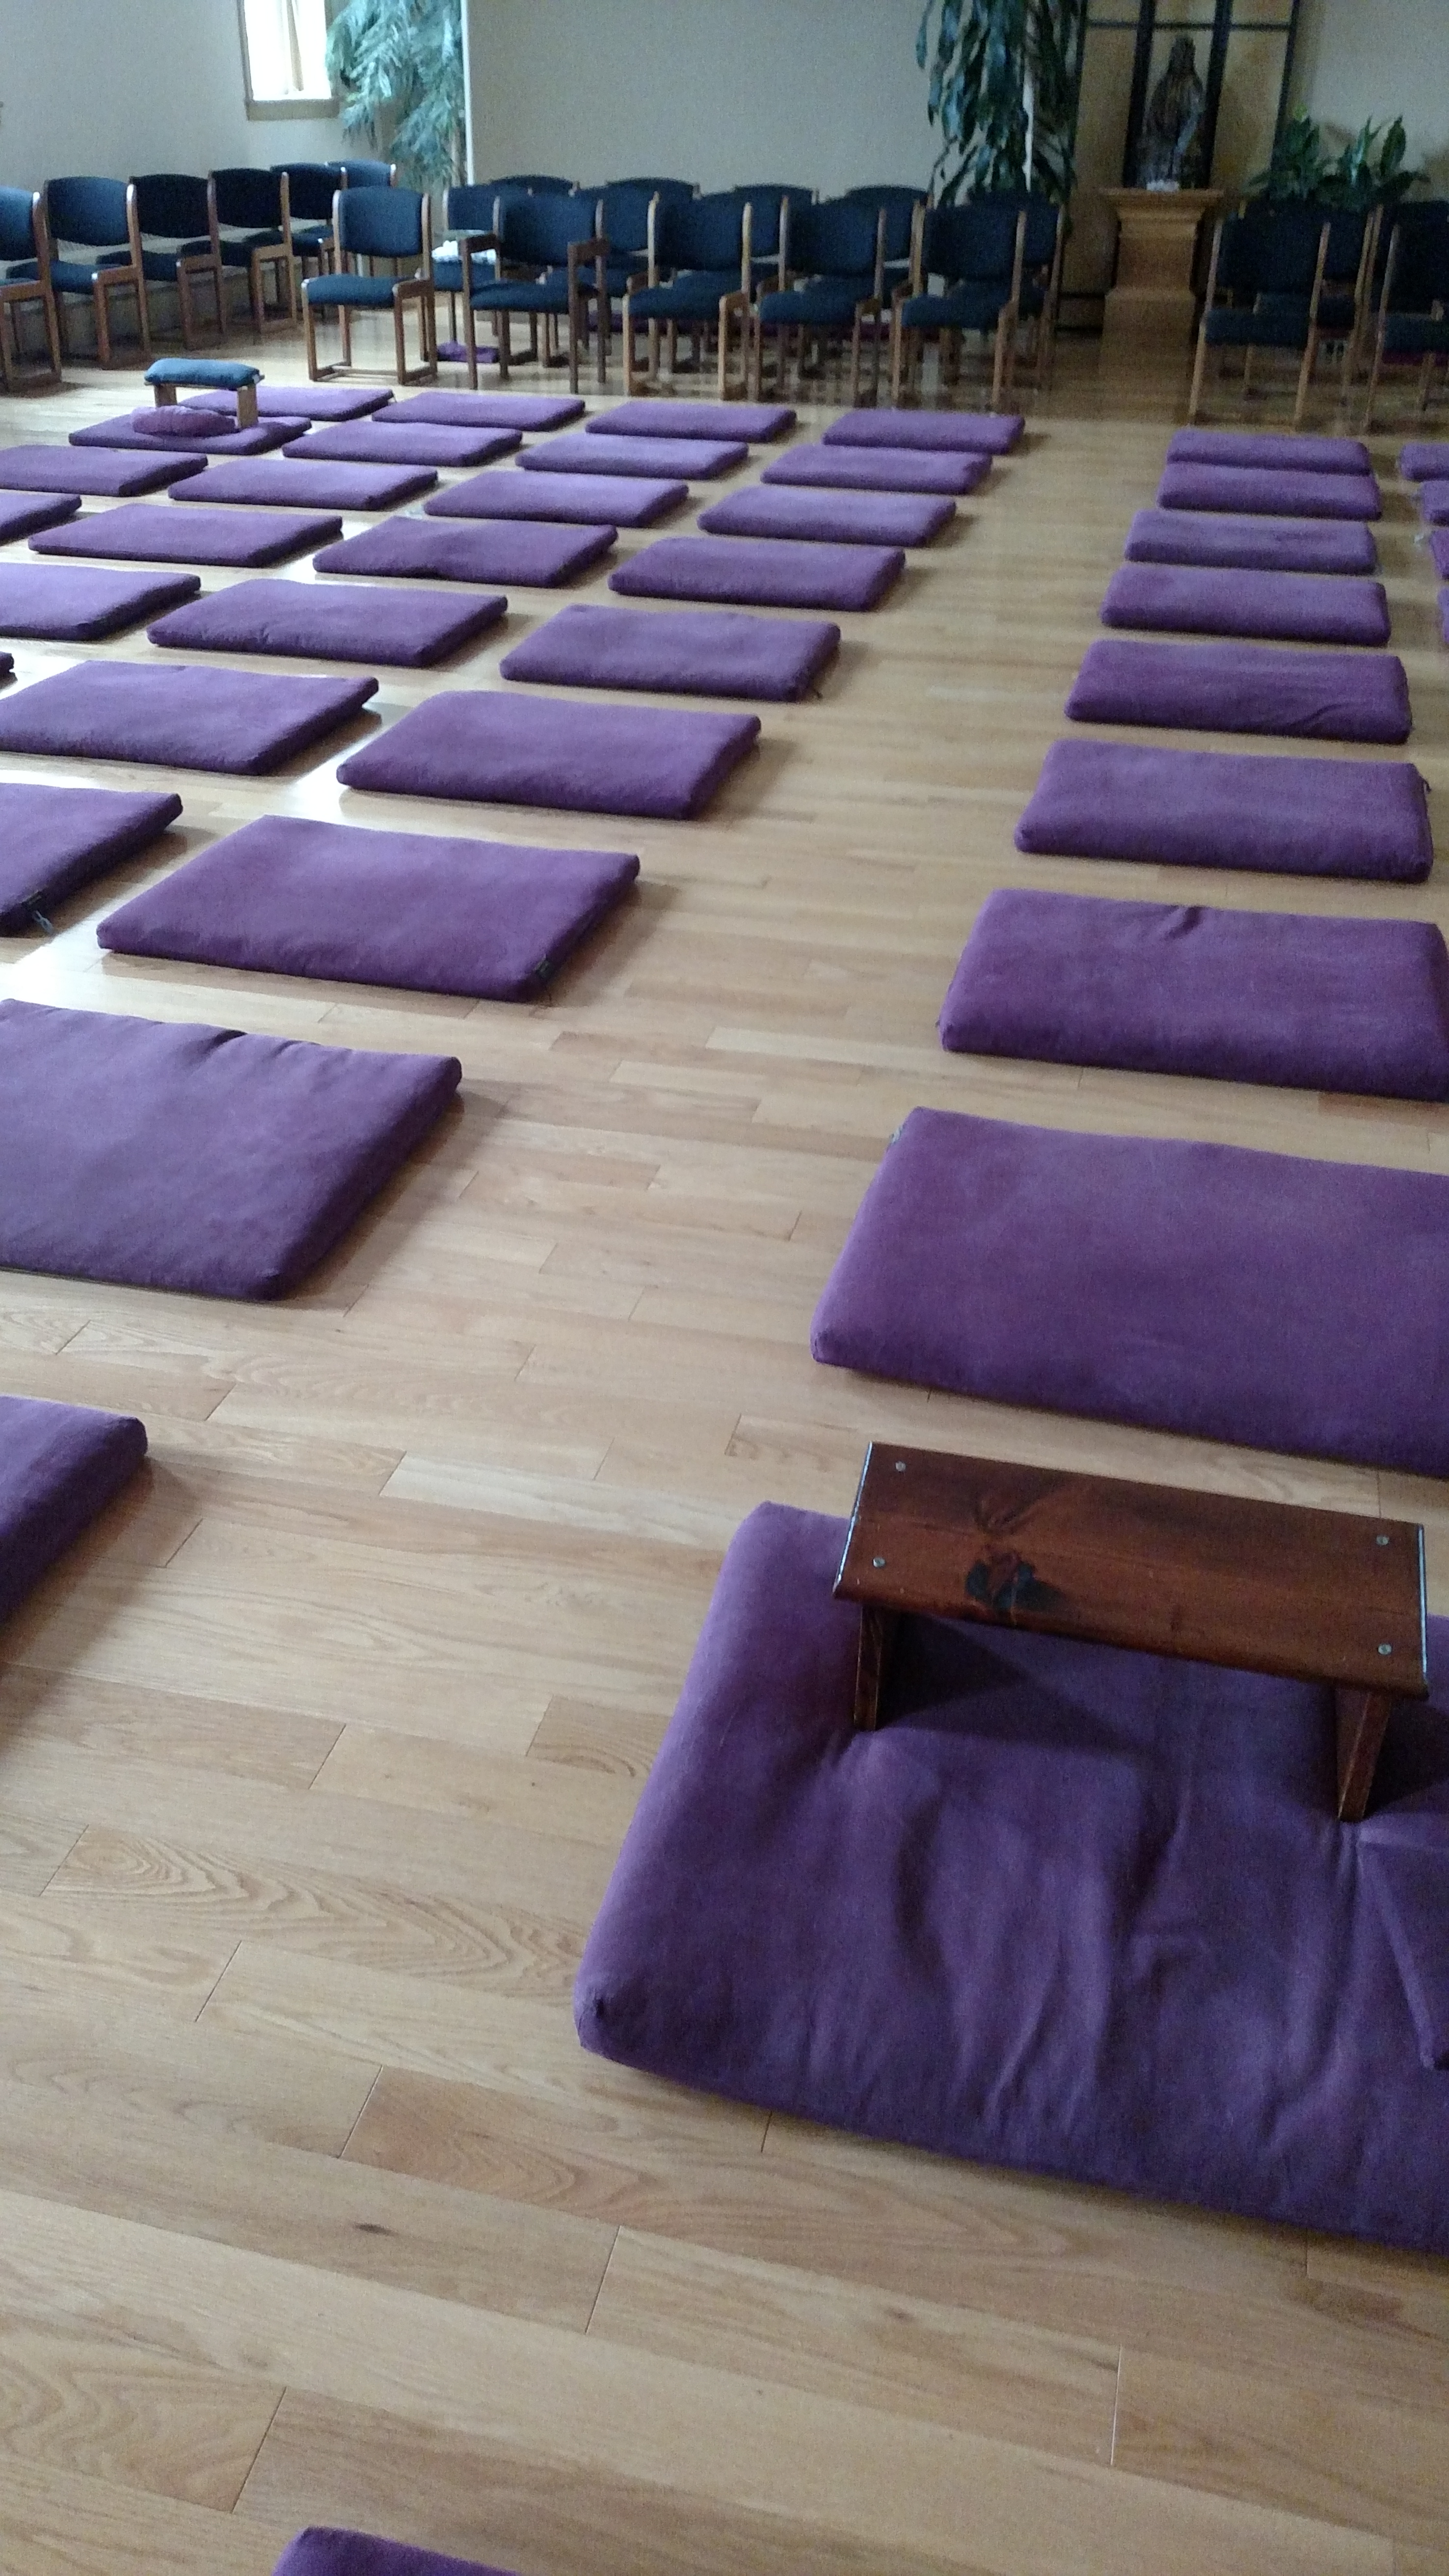 meditation hall at IMS with my little meditation bench and many, many unused cushions during a lull time in the center's schedule